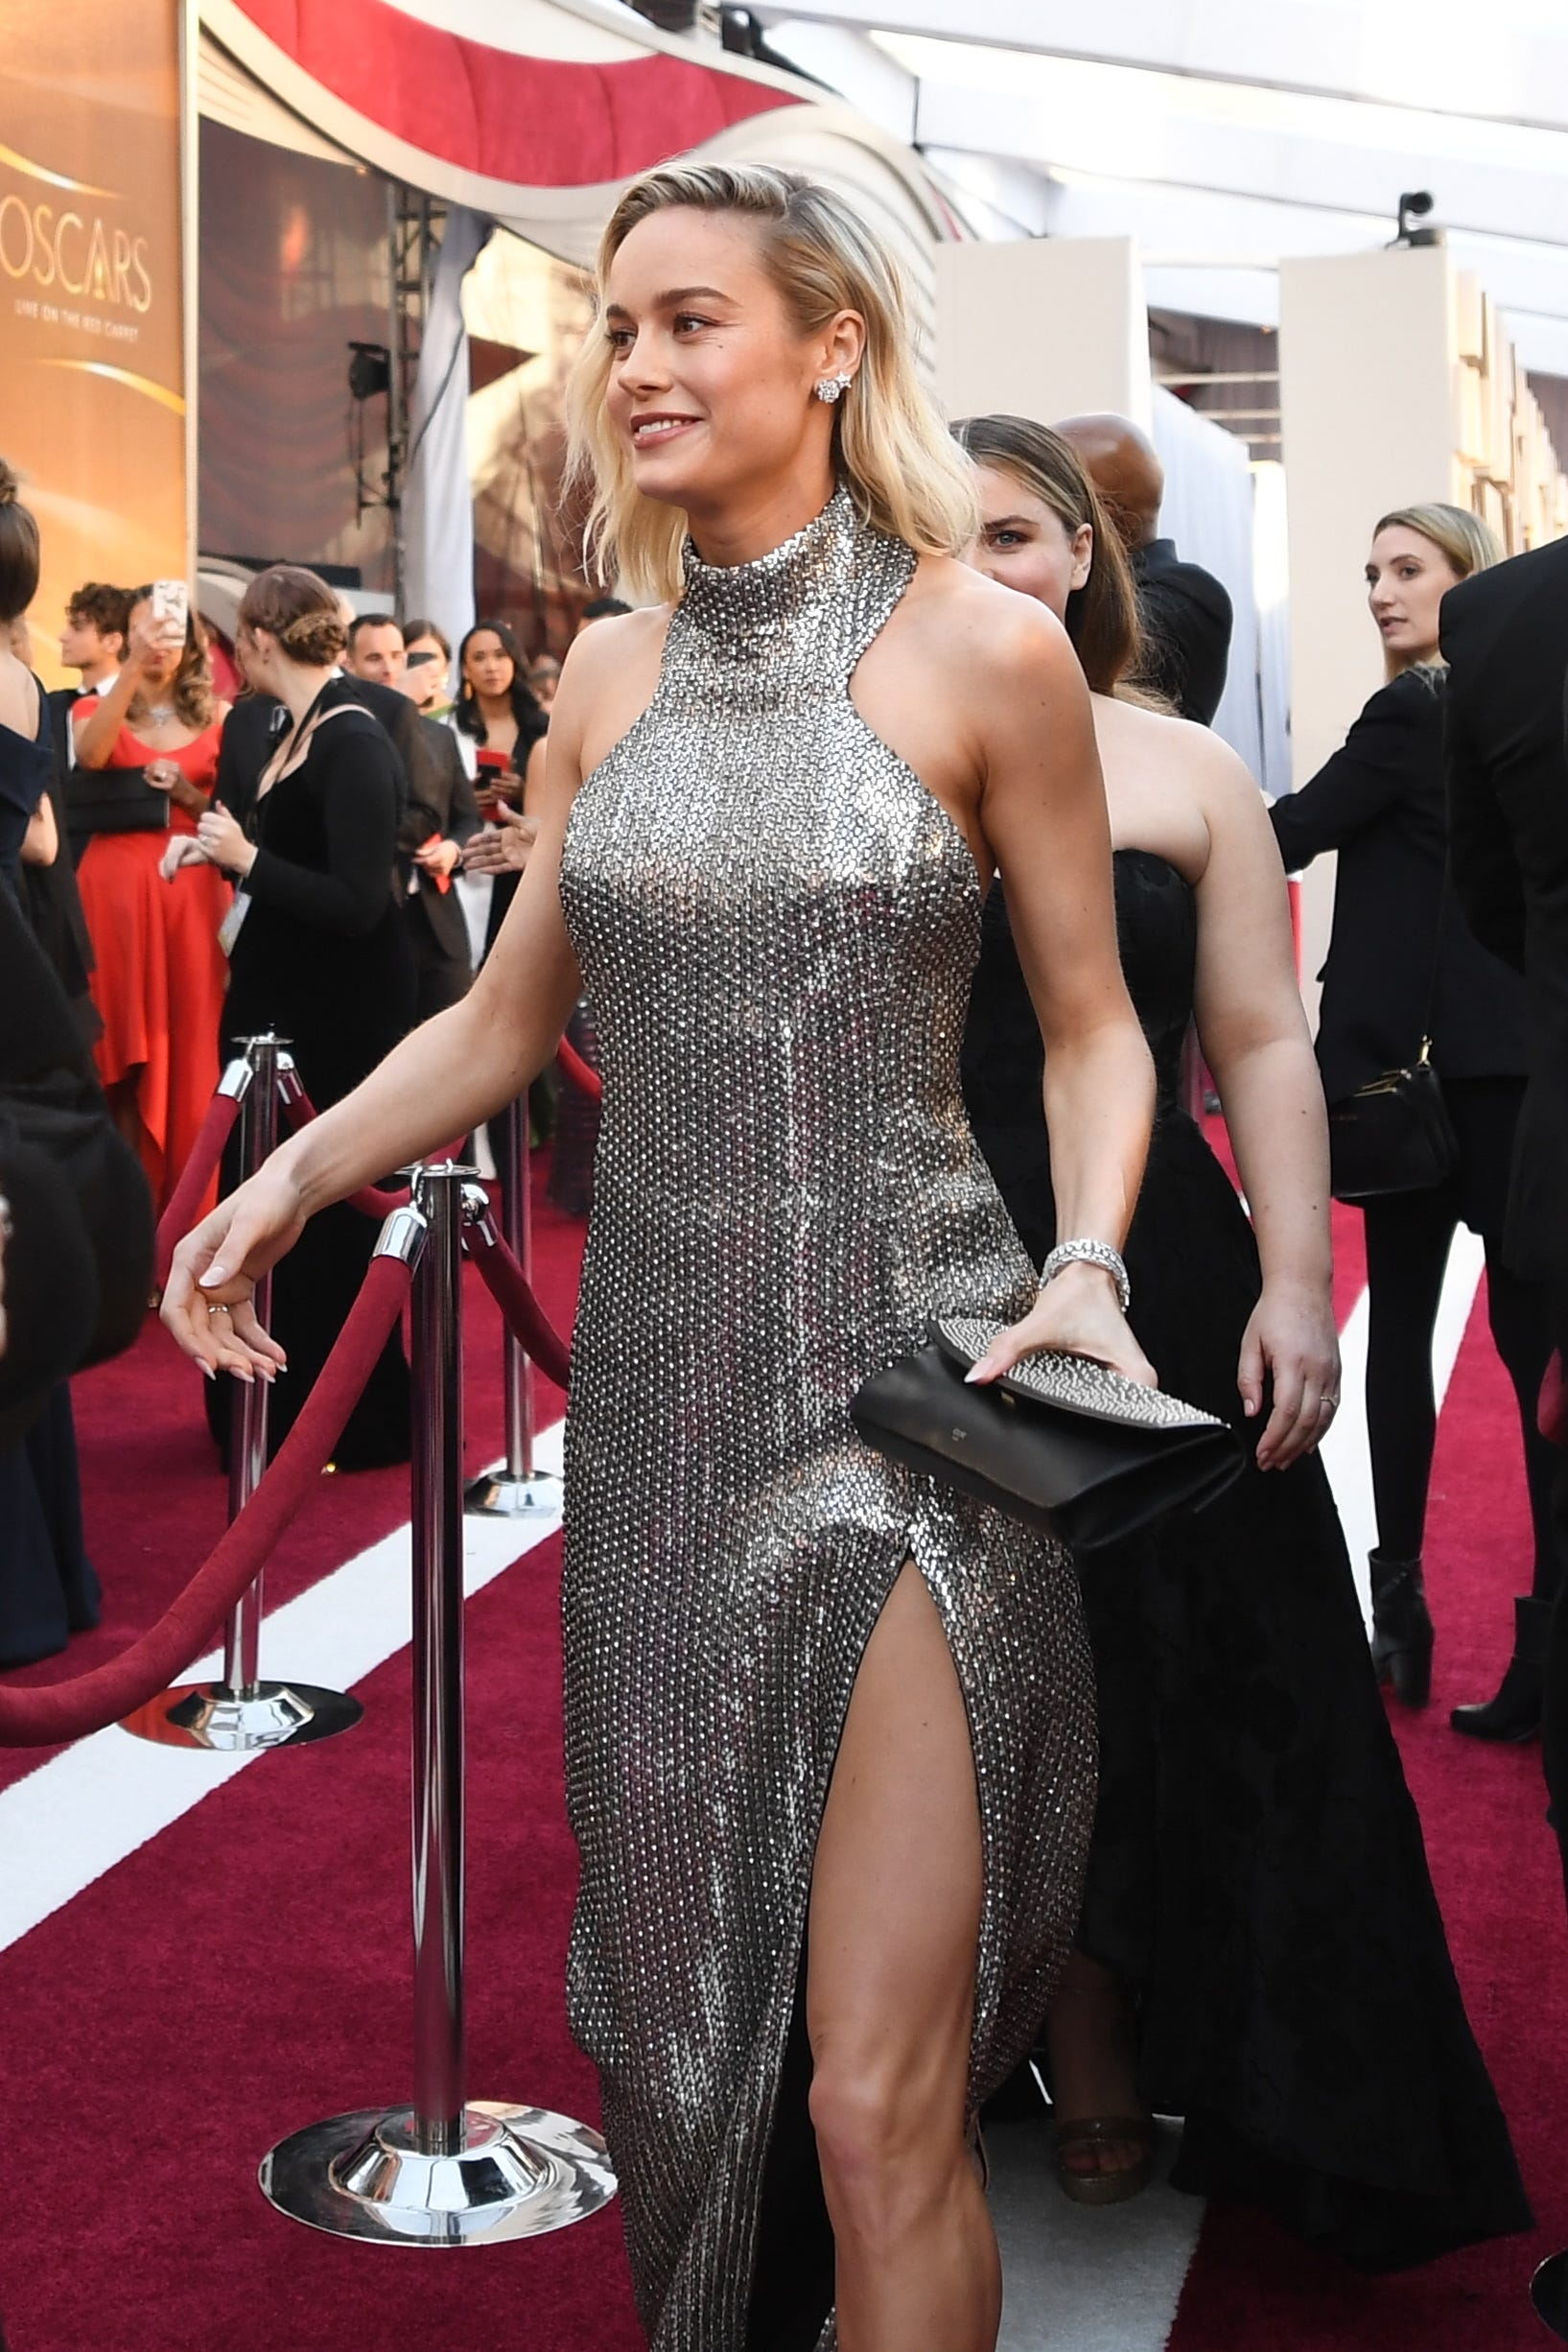 February 24, 2019; Los Angeles, CA, USA; Brie Larson arrives at the 91st Academy Awards at the Dolby Theatre. Mandatory Credit: Robert Hanashiro-USA TODAY NETWORK (Via OlyDrop)